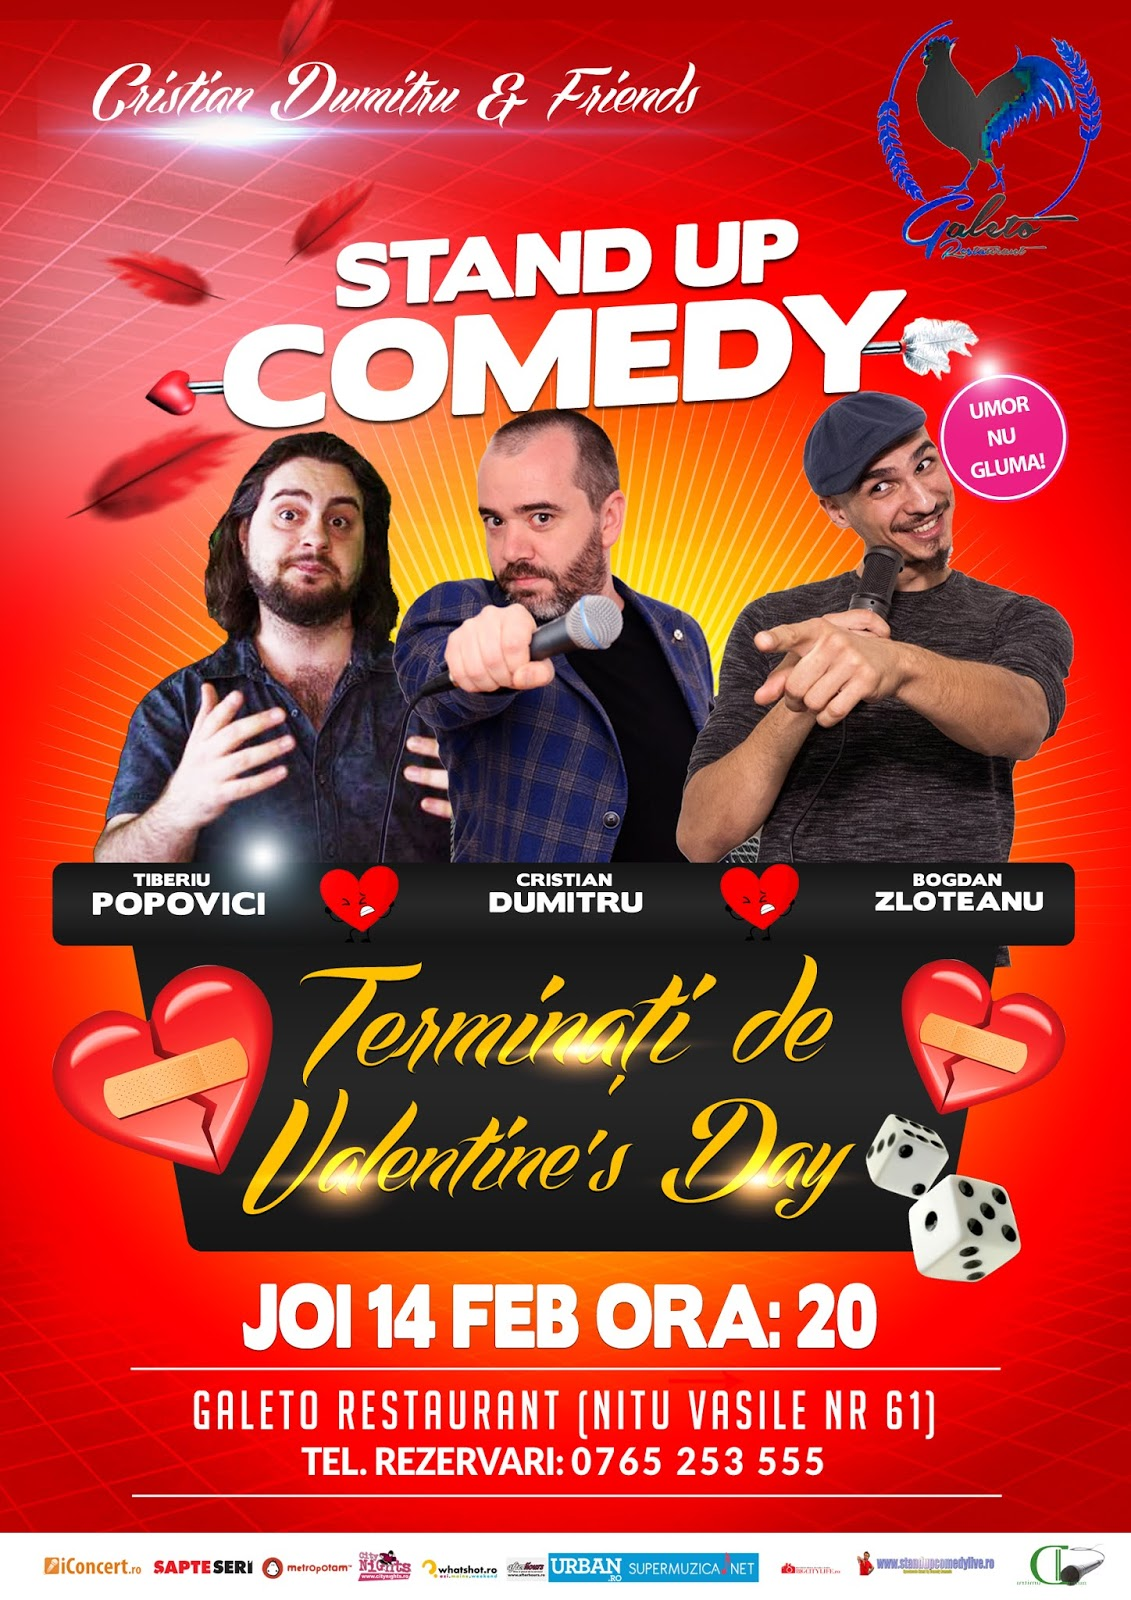 Stand-Up Comedy de Valentine's Day in Bucuresti